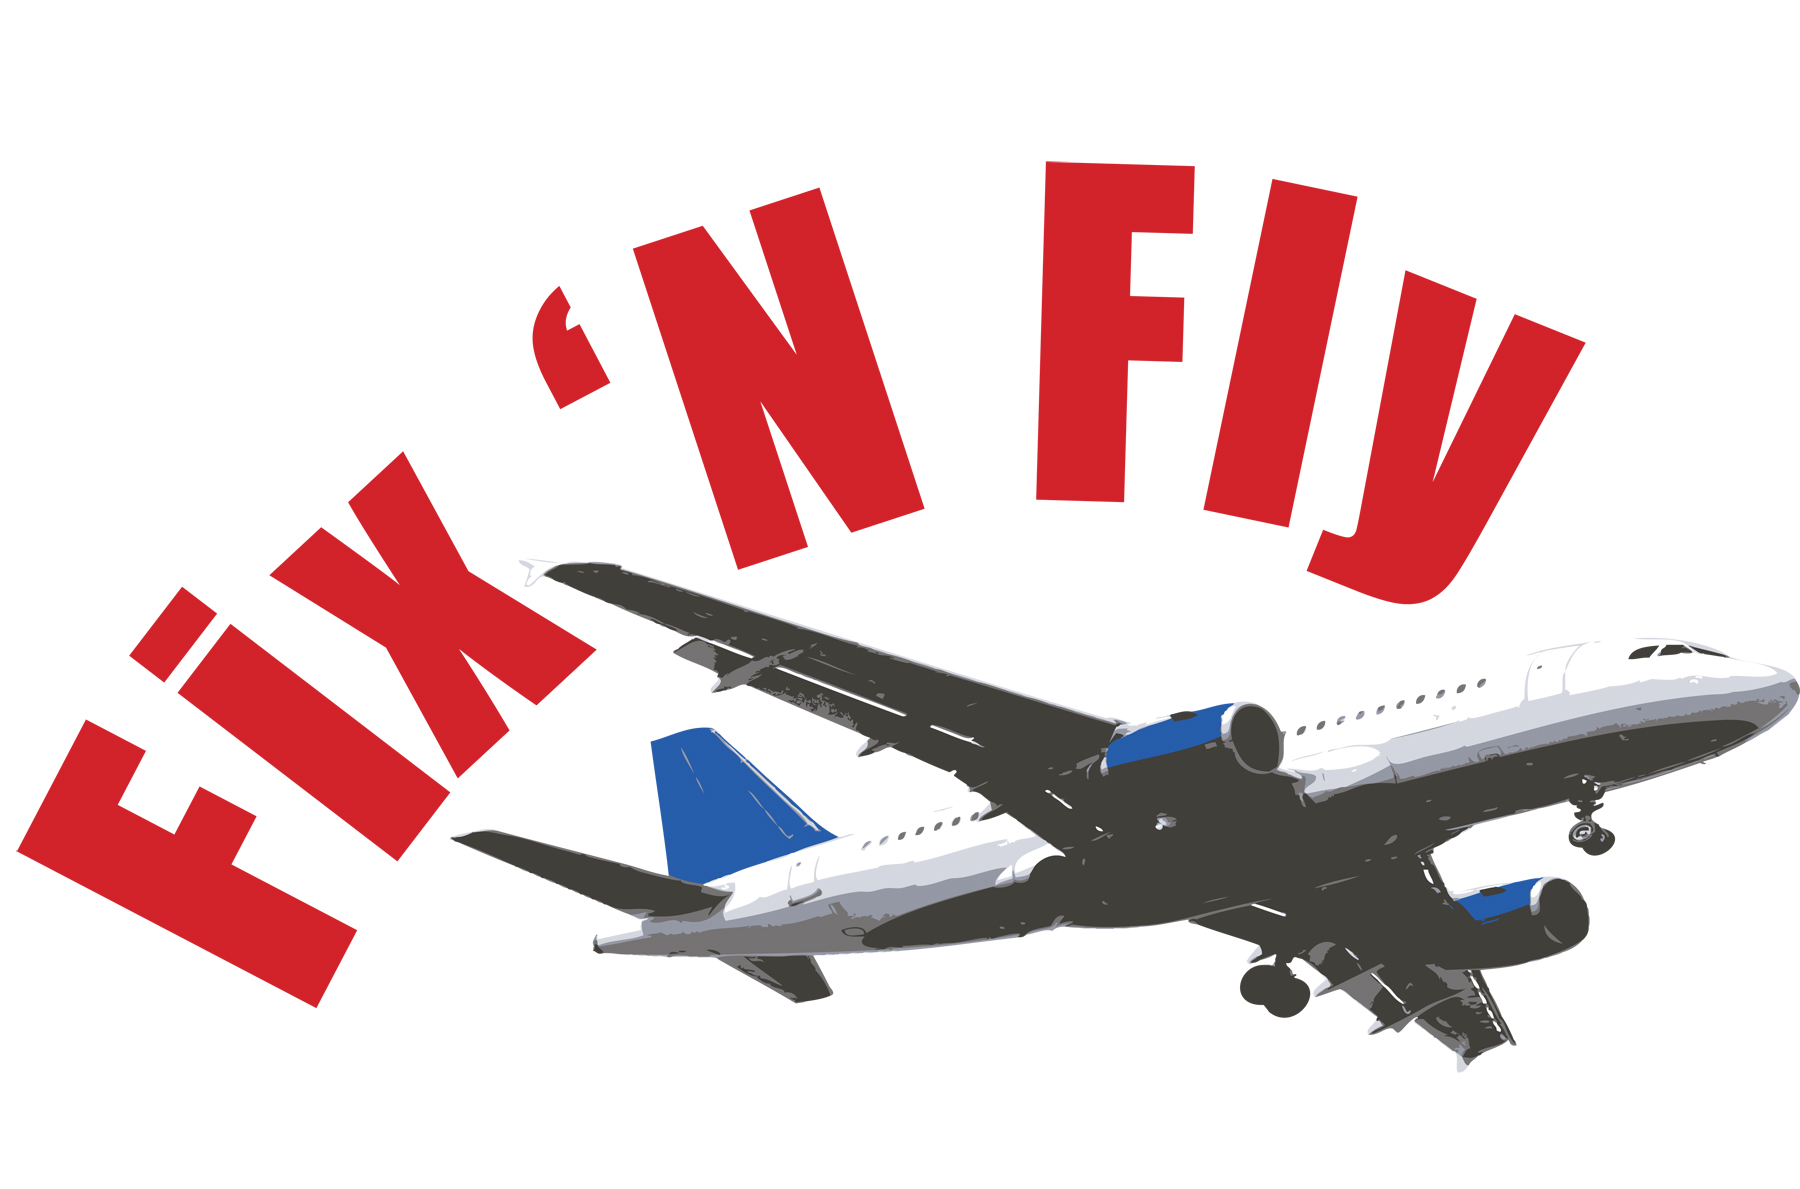 Fix'NFly